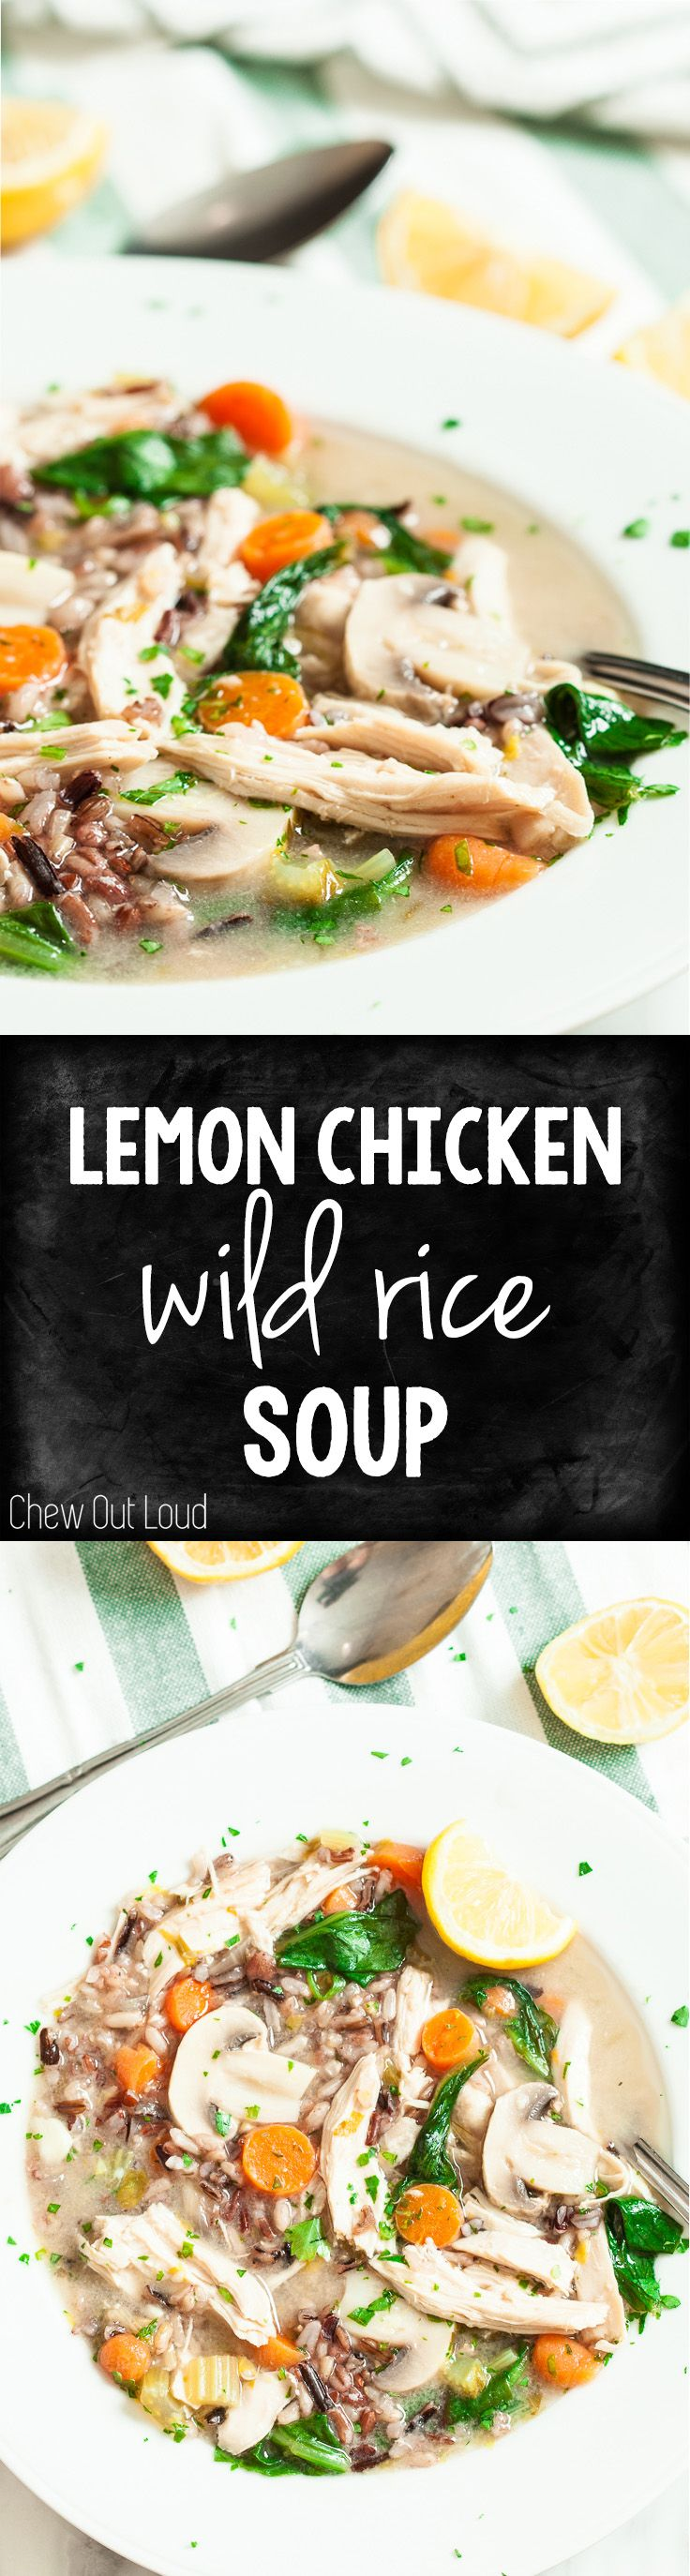 Lemon Chicken Wild Rice Soup. Perfect transition from winter to spring. Healthy, comforting, and SO GOOD. #soup #lemon #gf